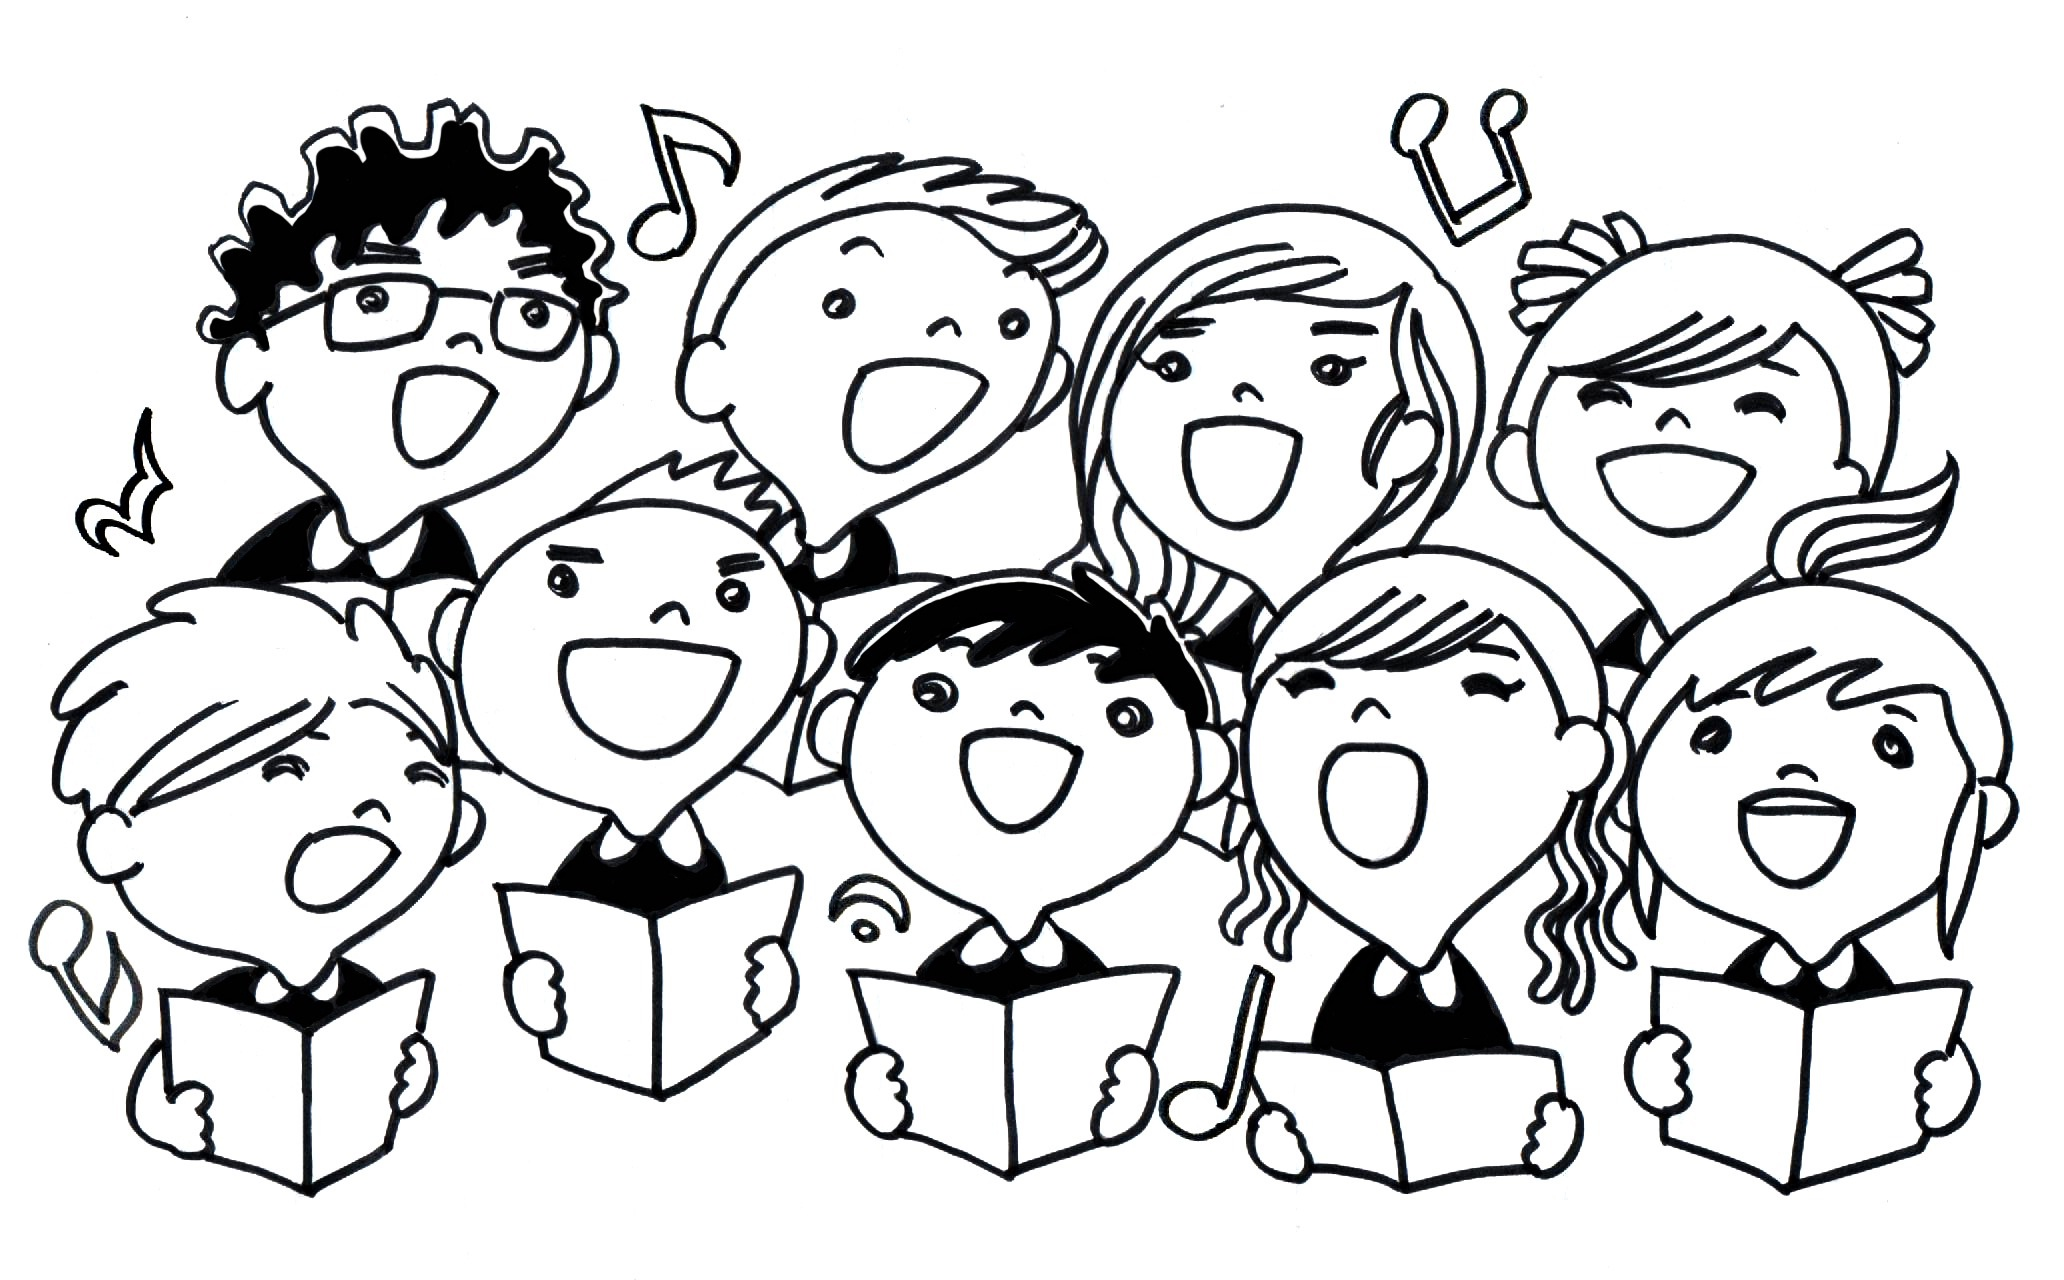 choir-clipart-african-american-free-clipart-images.jpg